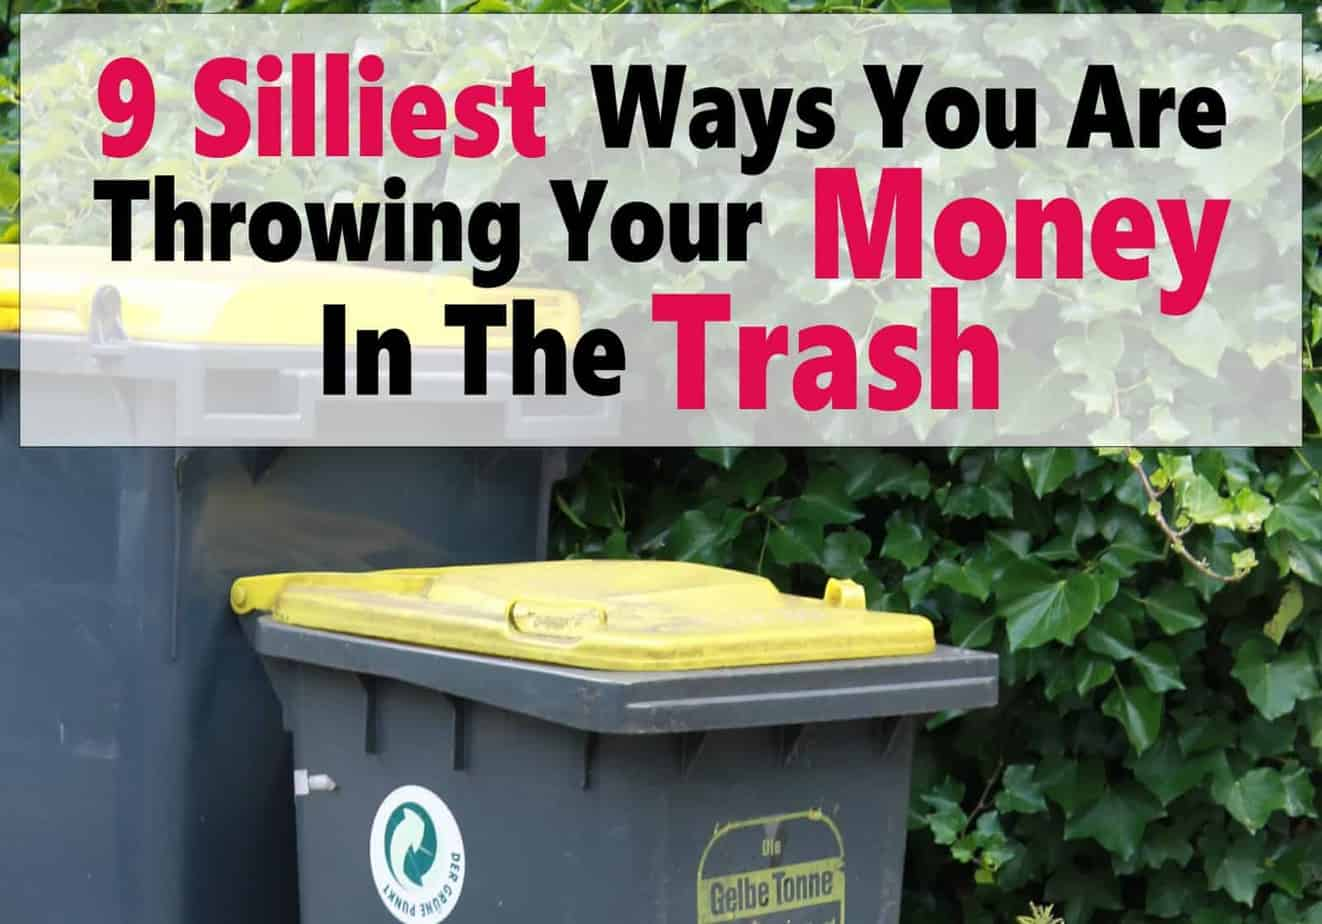 9 Silliest Ways You Are Throwing Your Money In The Trash ~ There are so many wasteful ways we lose money every single day. It doesn't need to be this way! Check out the 9 silliest ways you may be throwing your money in the trash and how to stop. money | finance | save money | personal finance | debt | debt free #money #finance #debt #savemoney